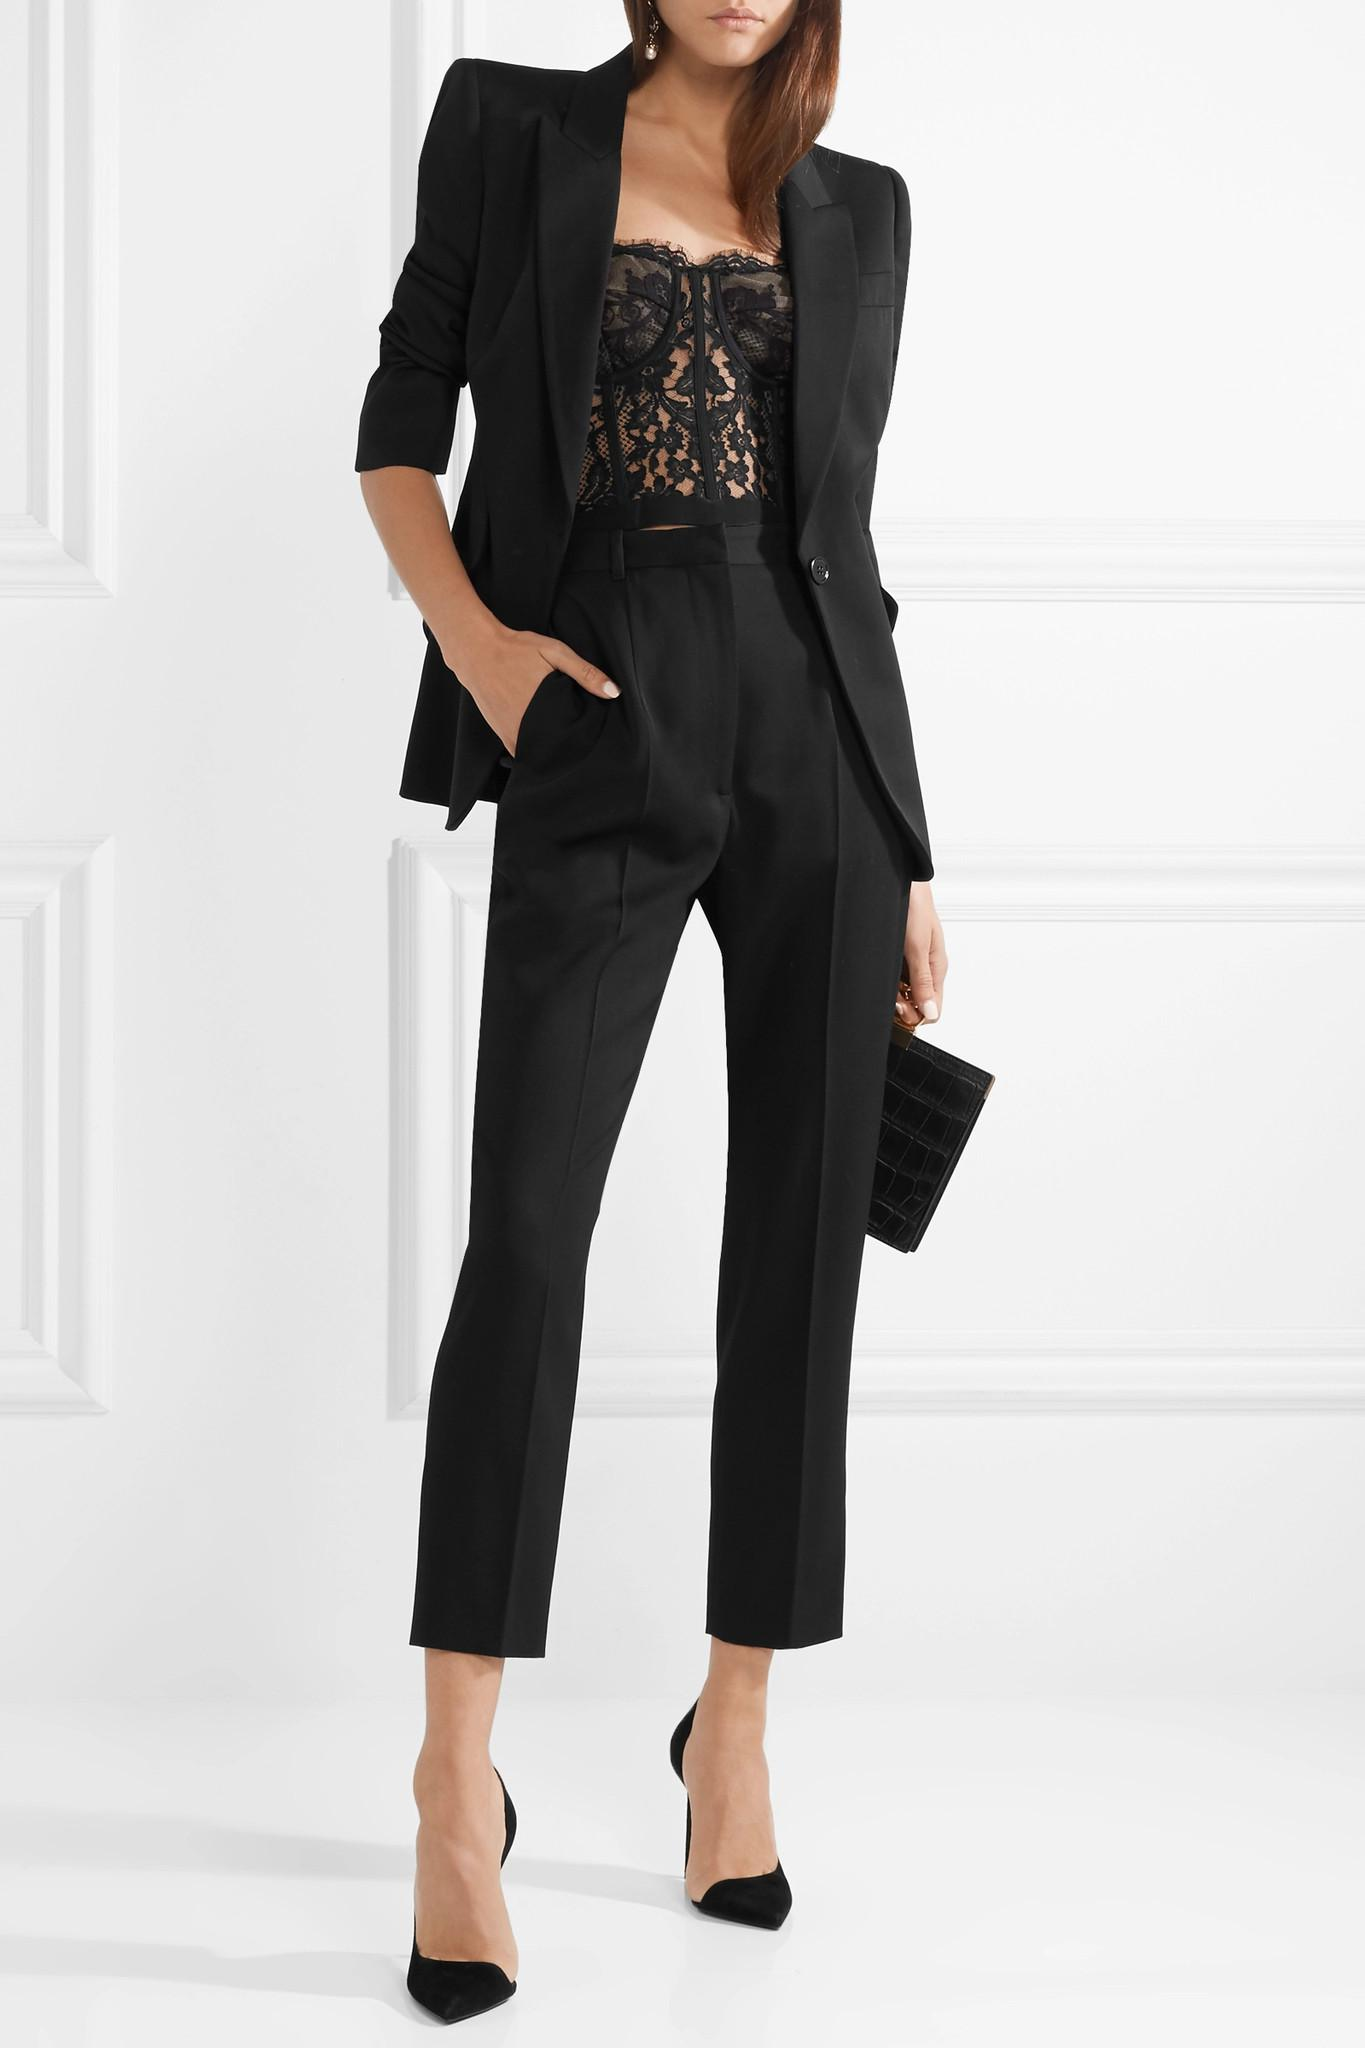 31ee619b8ad50 Alexander McQueen - Black Cotton-blend Sarabande Lace Bustier Top - Lyst.  View fullscreen